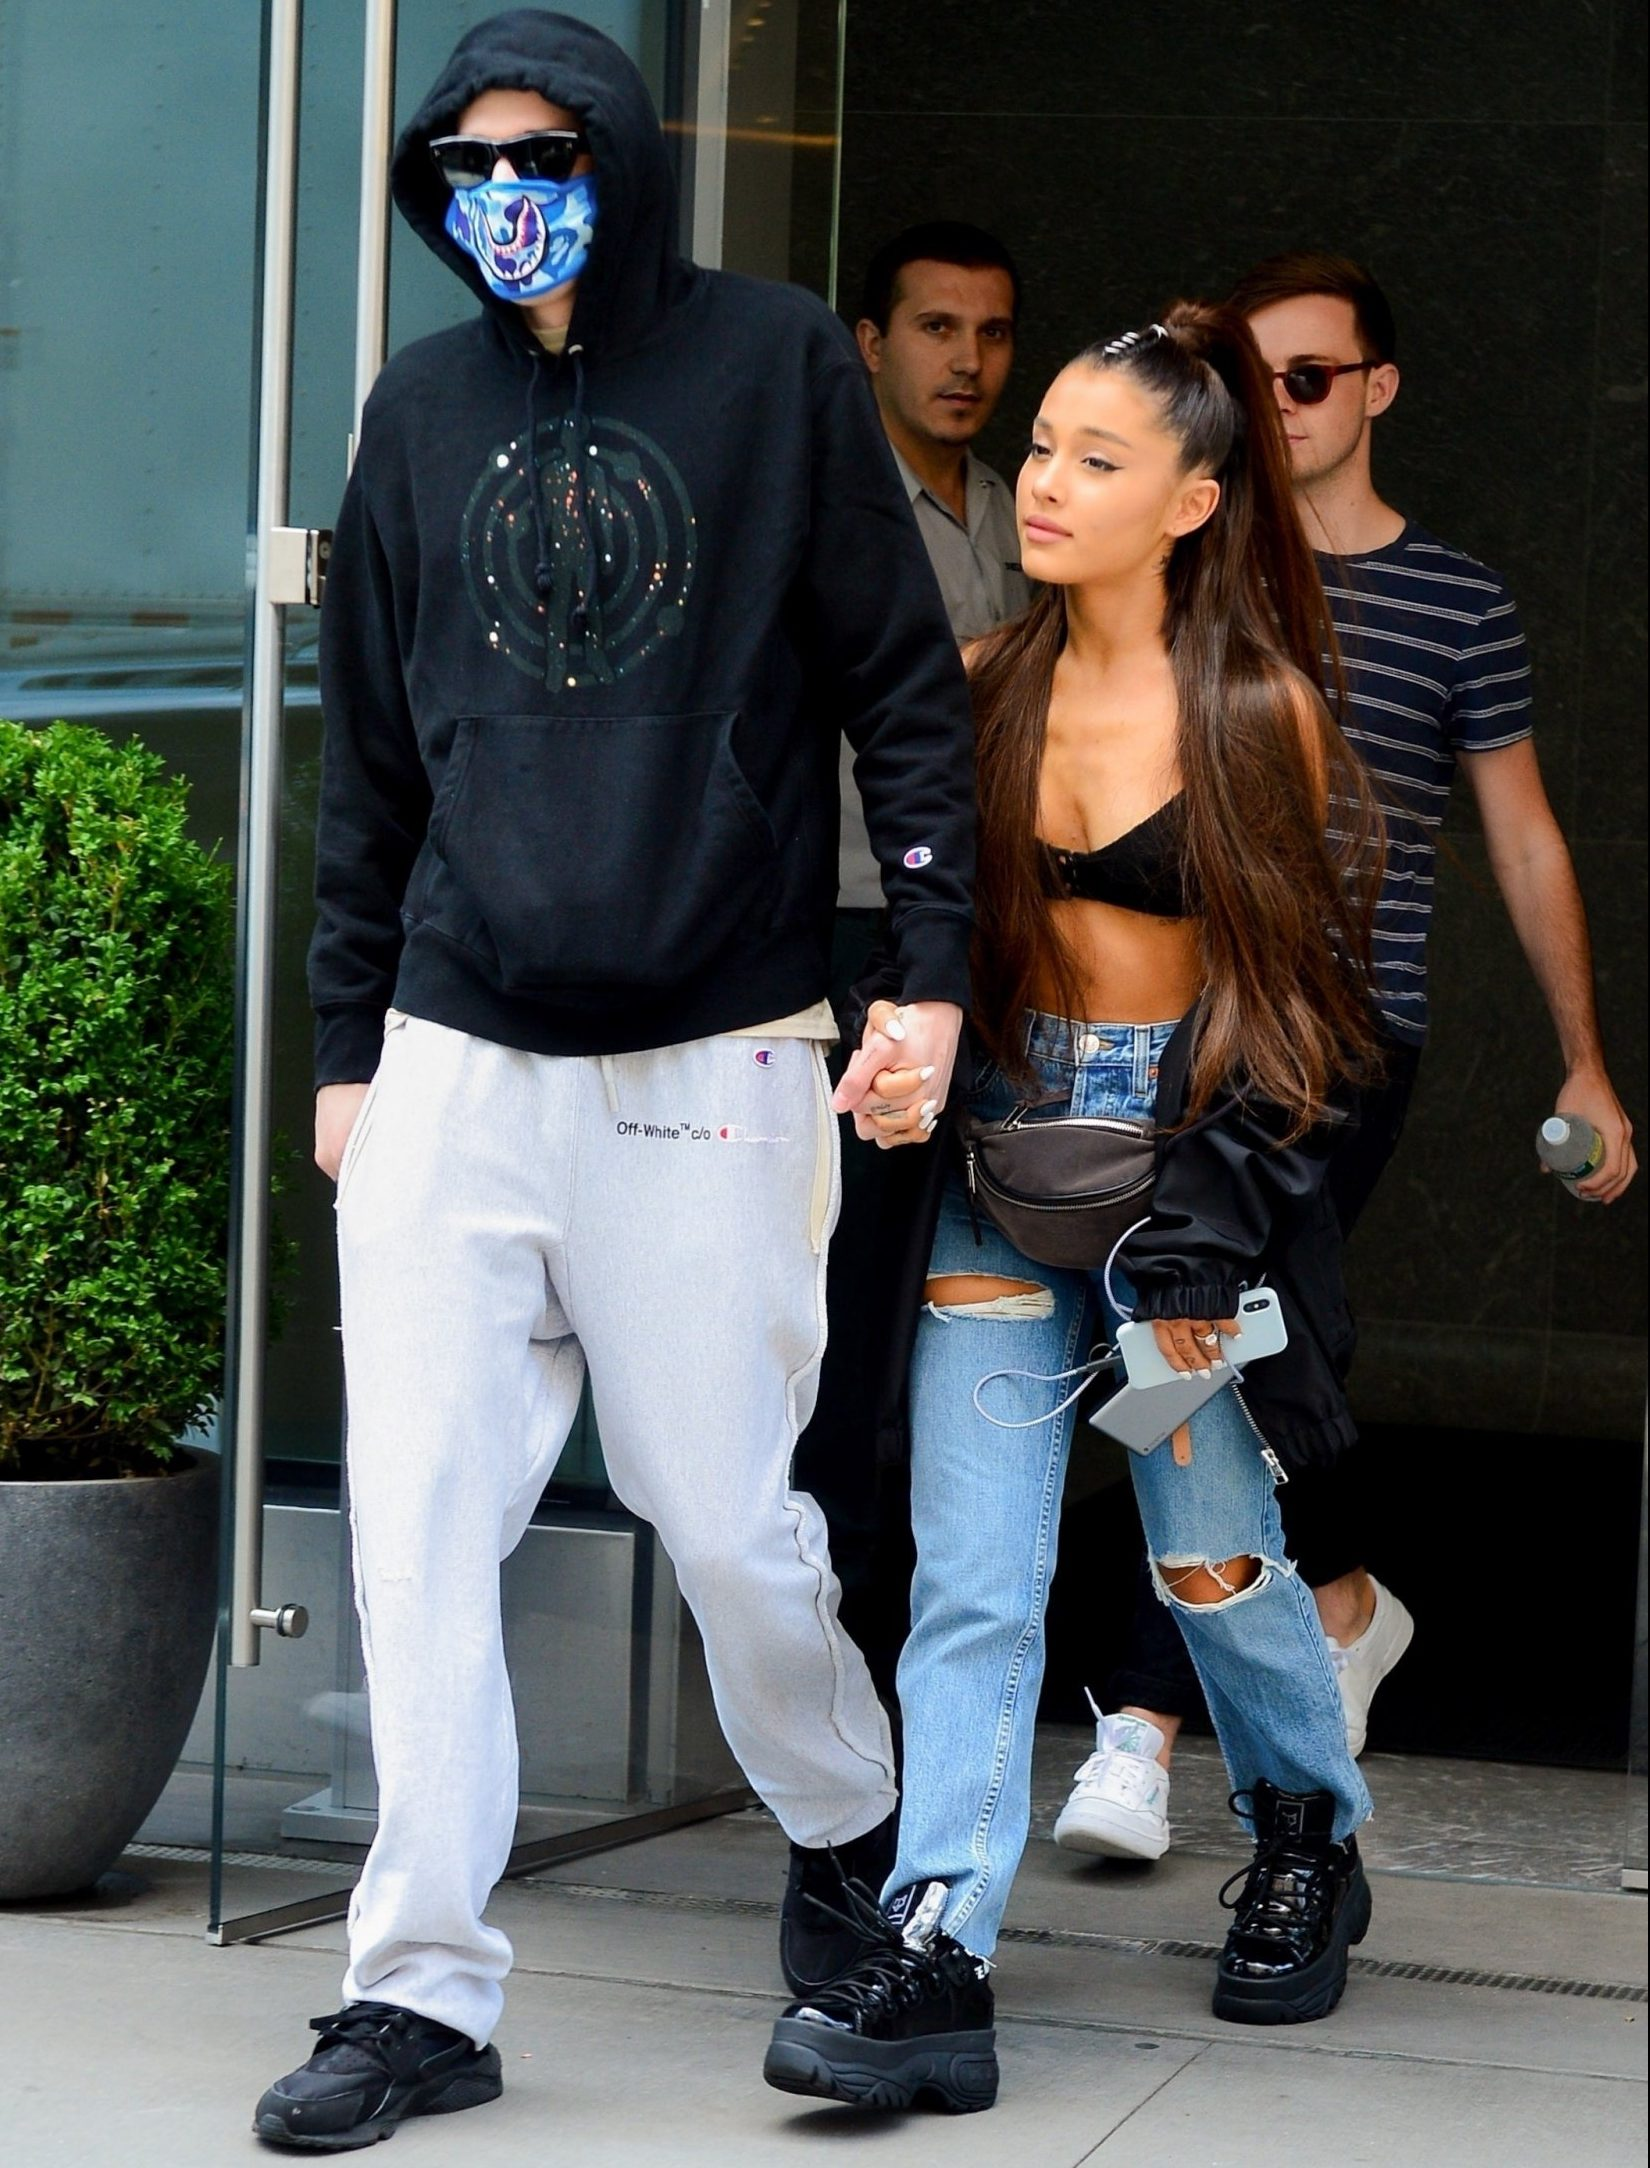 New York, NY - *EXCLUSIVE* Pop superstar Ariana Grande shows some skin as she and her fiance, actor Pete Davidson, are spotted heading out for some shopping with friends in New York. Pete goes incognito with a bandana covering his face, as he steps out holding hands with his lovey girlfriend. Pictured: Pete Davidson, Ariana Grande BACKGRID USA 28 JUNE 2018 USA: +1 310 798 9111 / usasales@backgrid.com UK: +44 208 344 2007 / uksales@backgrid.com *UK Clients - Pictures Containing Children Please Pixelate Face Prior To Publication*